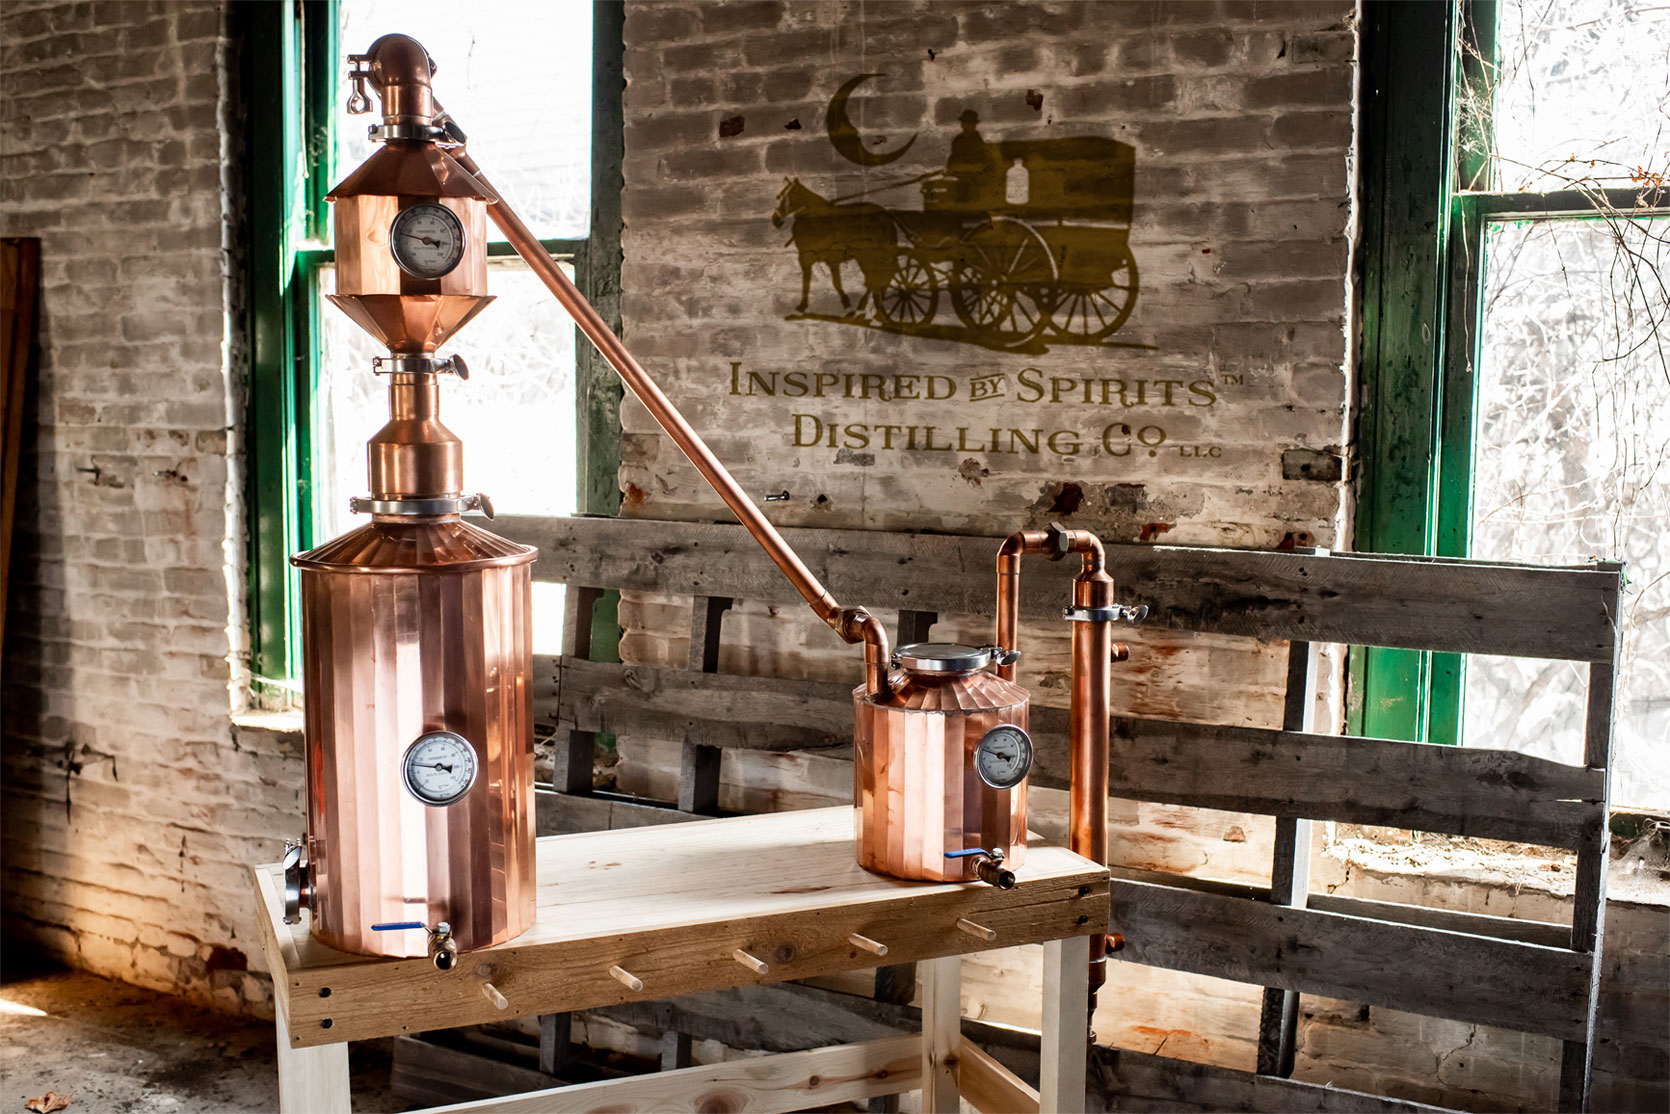 Inspired-by-spirits-distilling-co-hand-crafted-copper-stills-dr-tumbletys-pittsburgh-pa